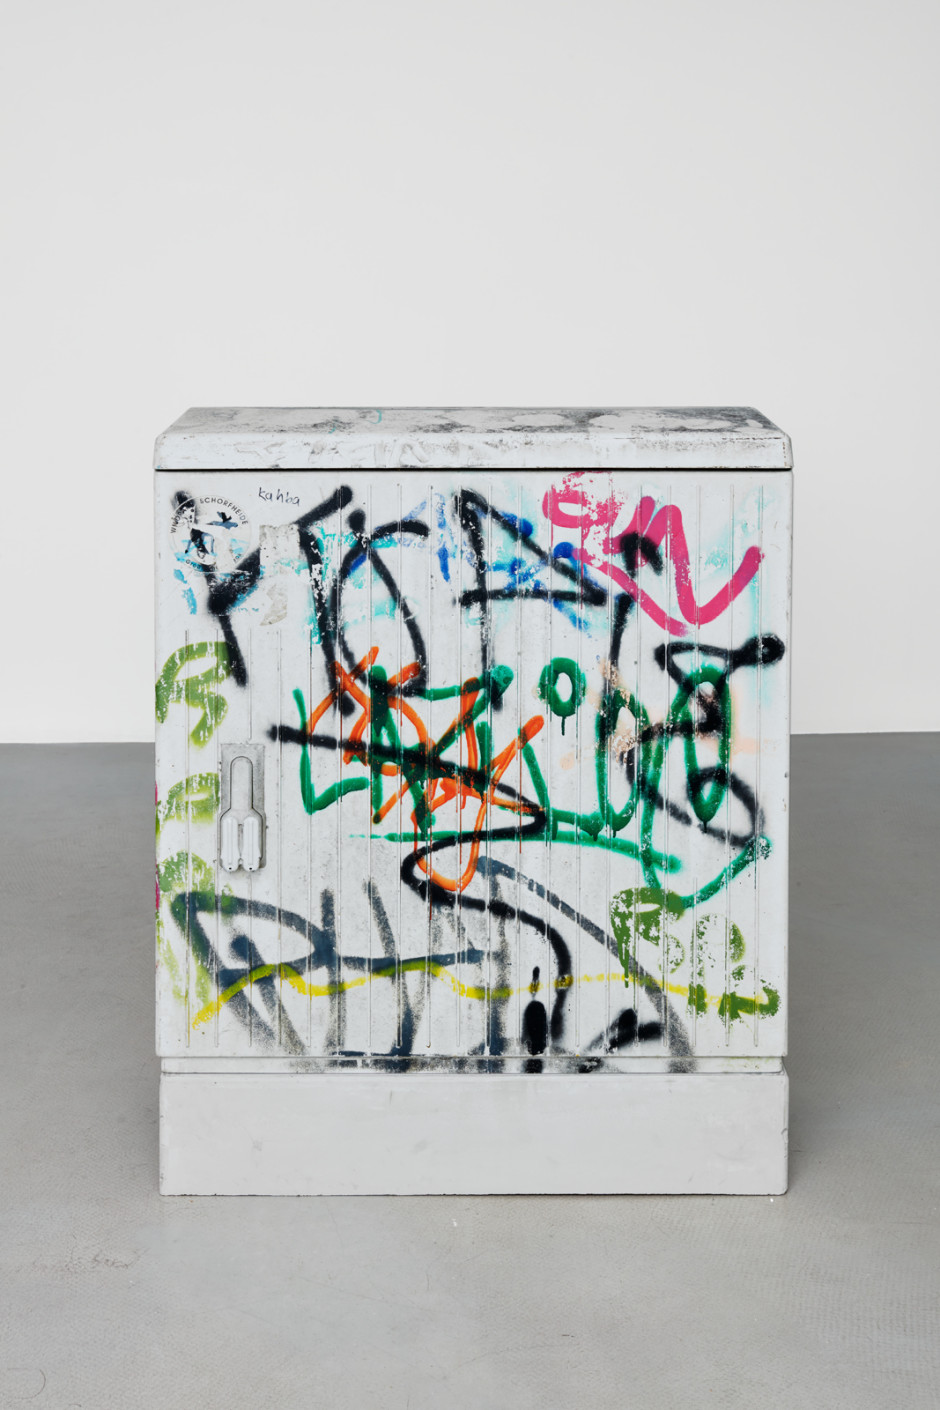 Klara Liden  Kahba, 2020  junction box, concrete  102.4 x 78.4 x 35 cm / 40 ¼ x 30 ⅞ x 13 ¾ in